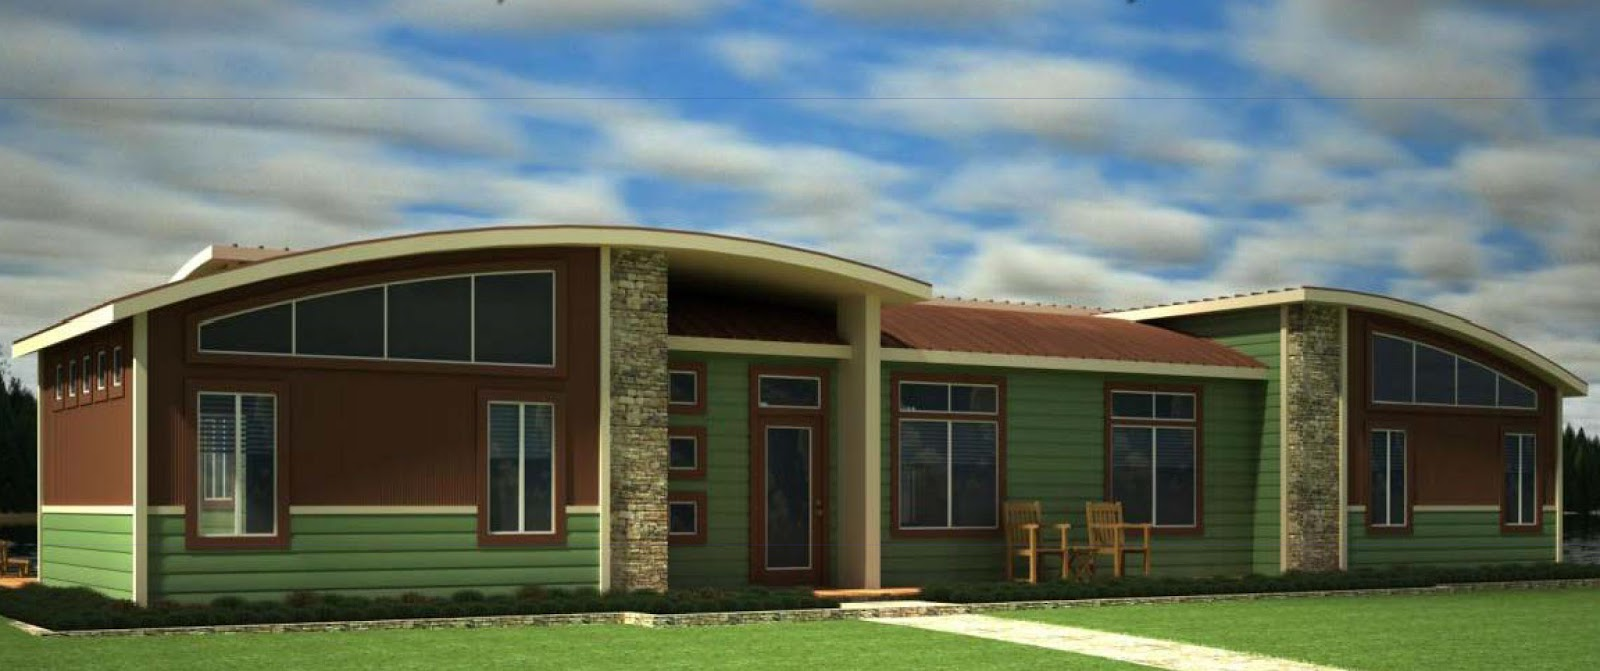 2012 manufactured housing industry awards mobile home living for Industrie mobel